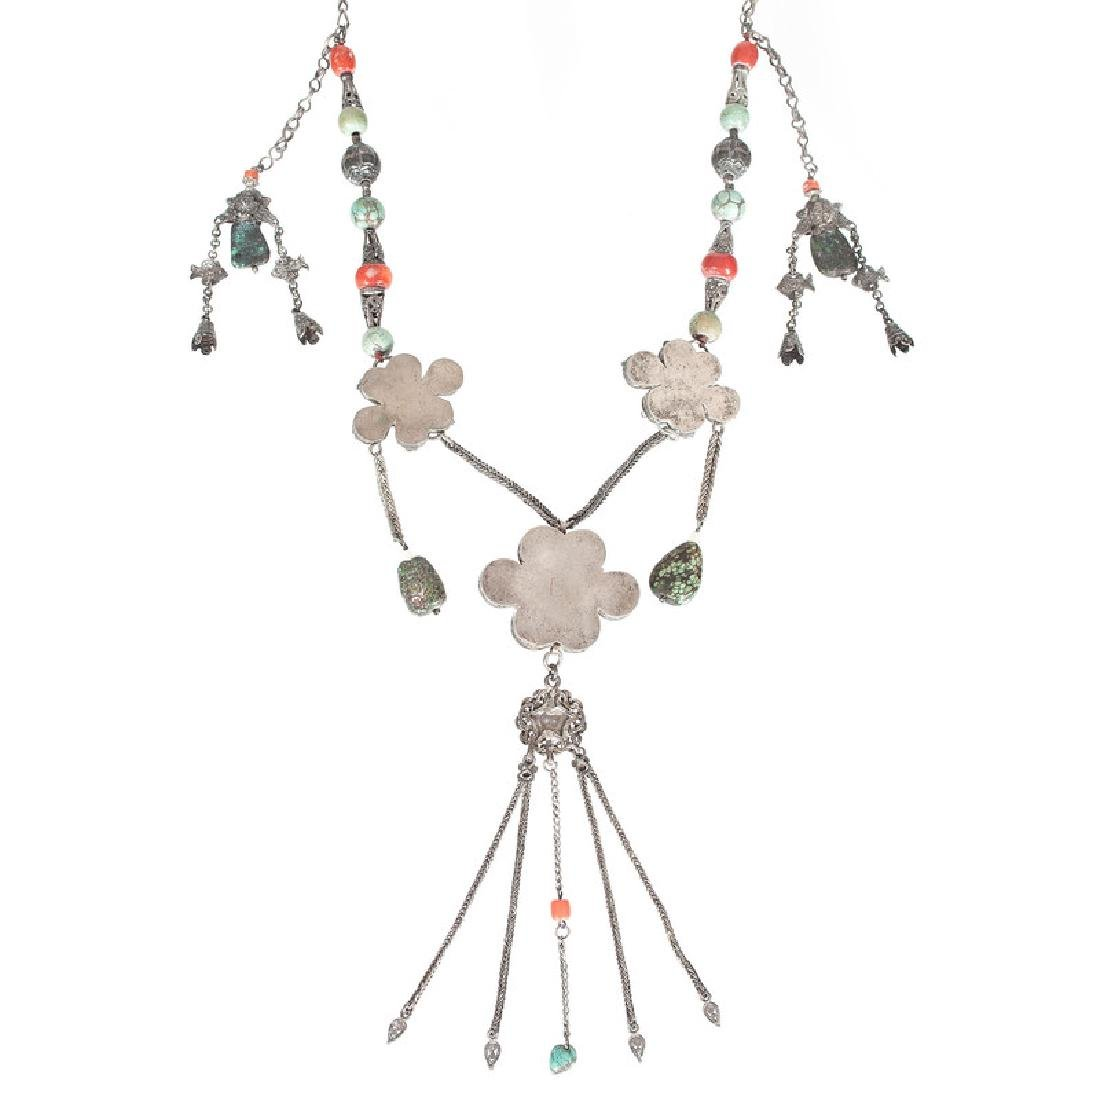 Tibetan Silver and Turquoise Necklace, Plus - 3